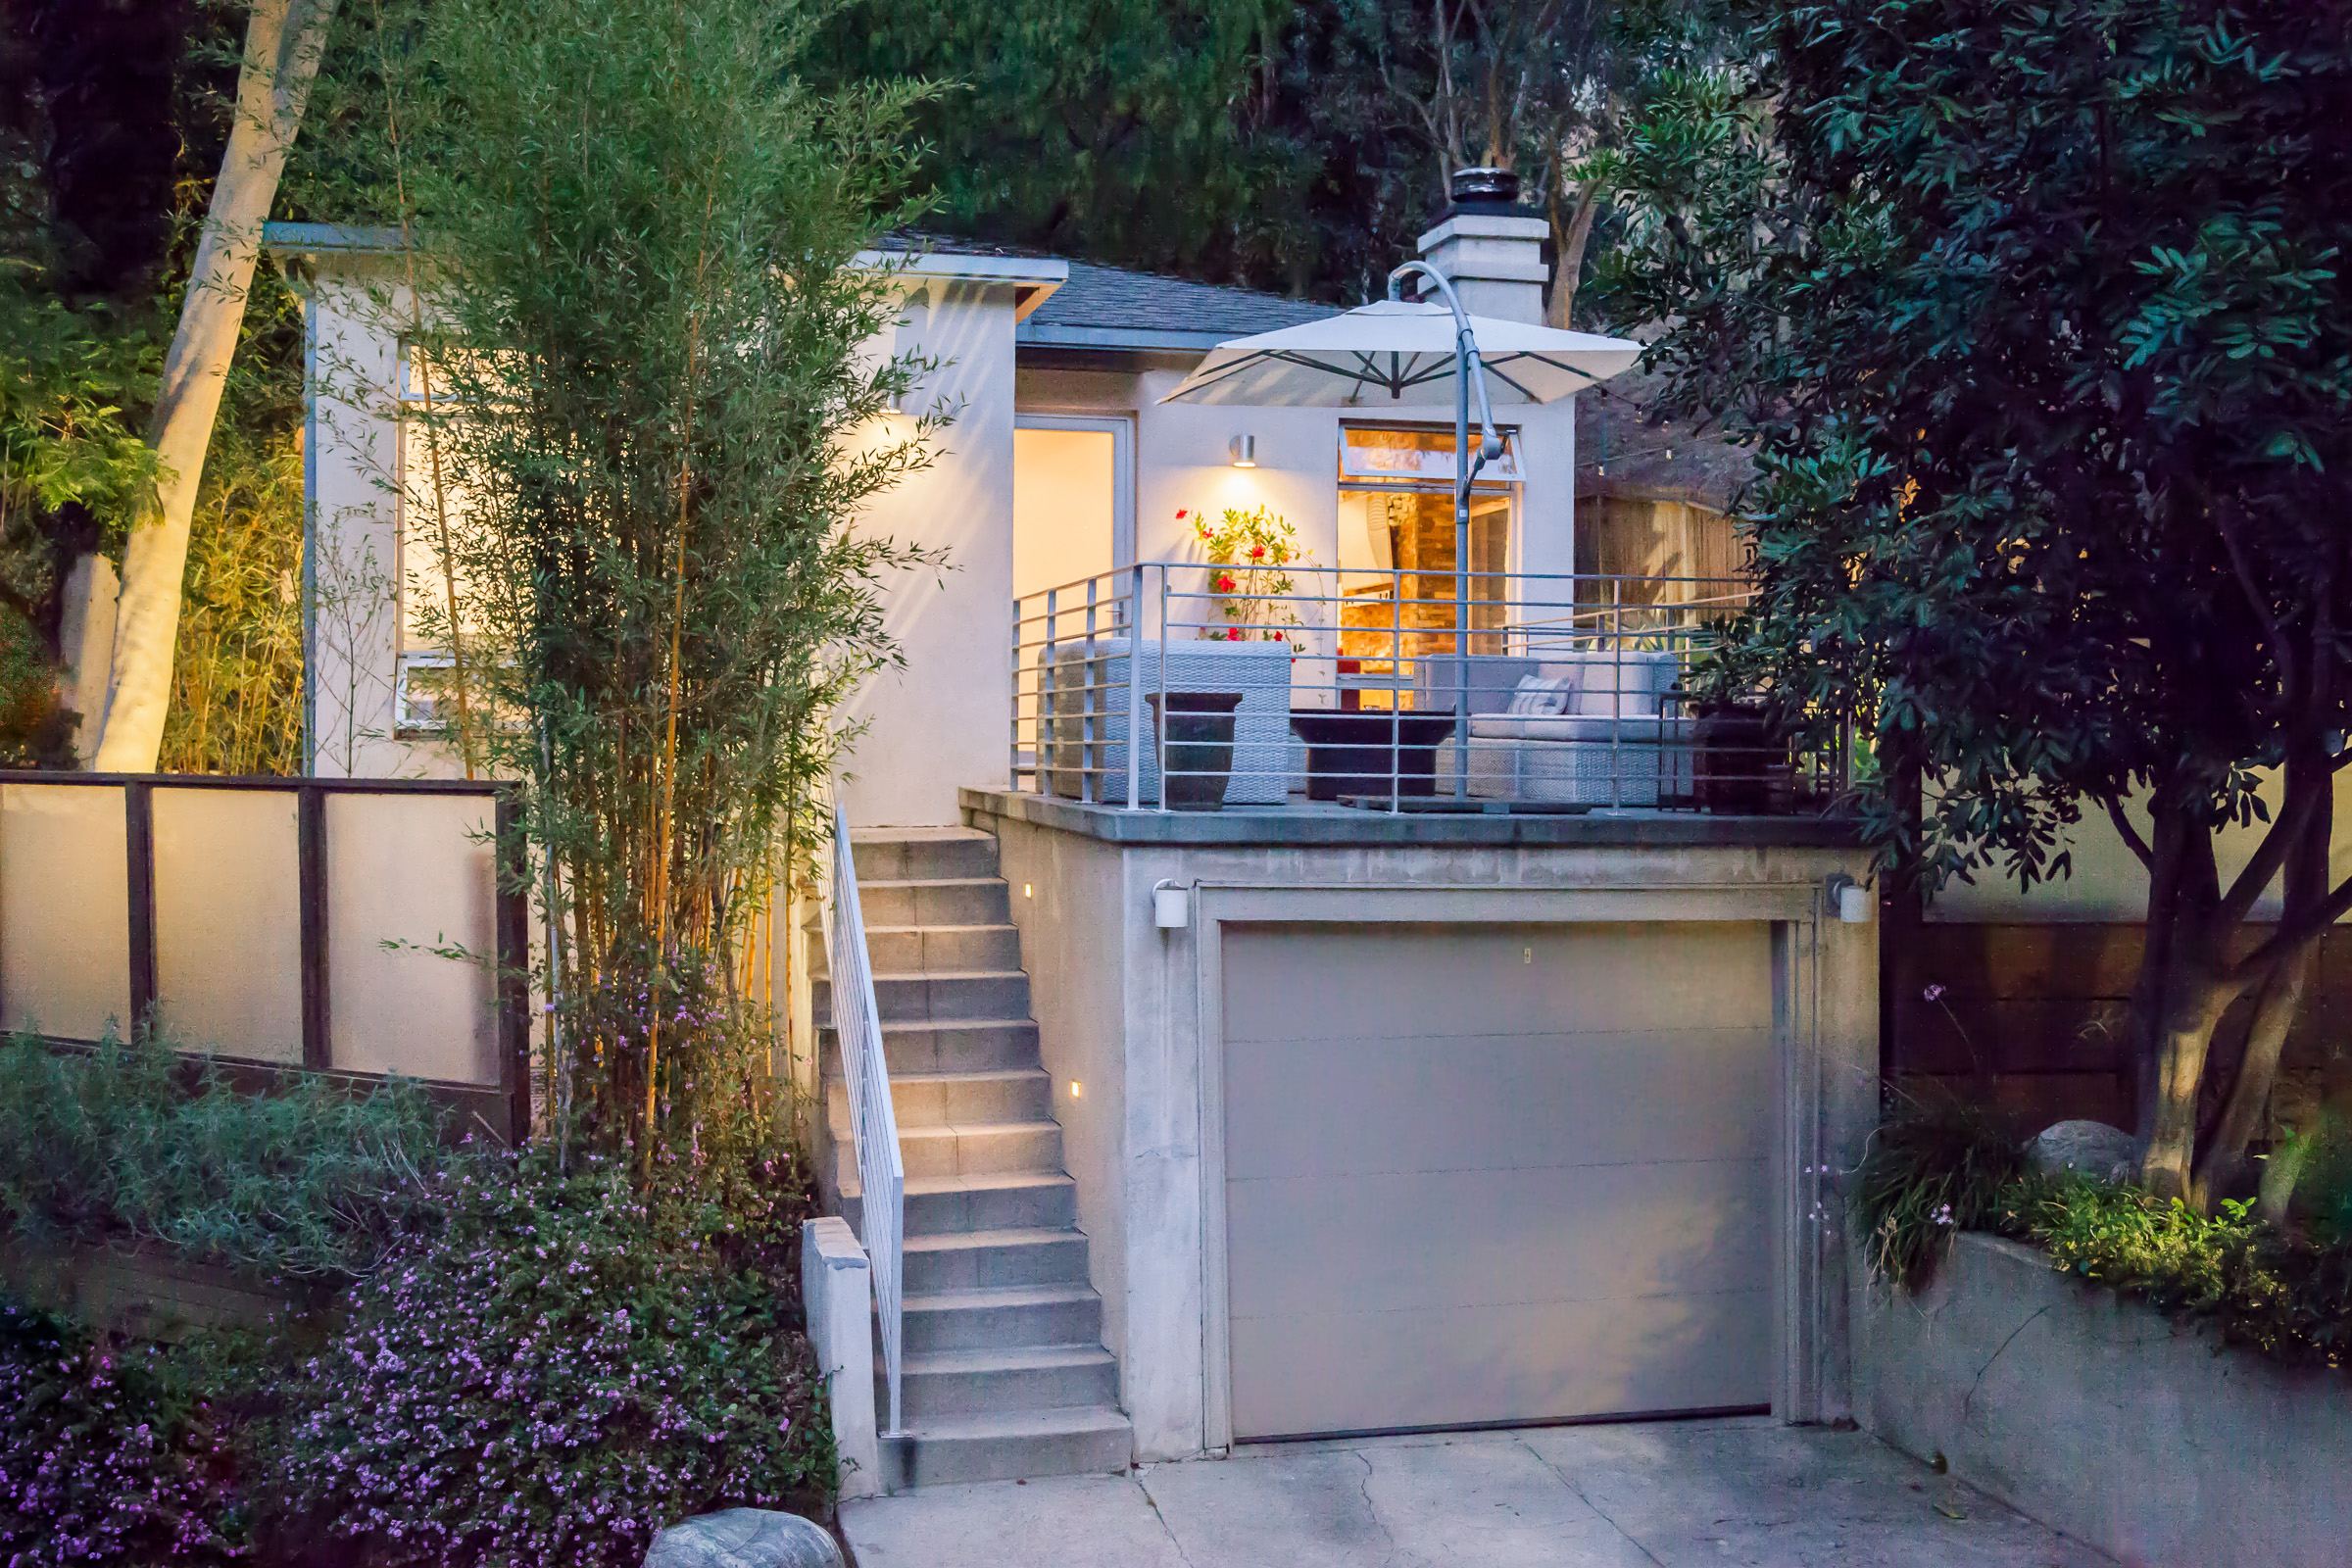 2050 stanley hills drive-25 front view at twilight.jpg